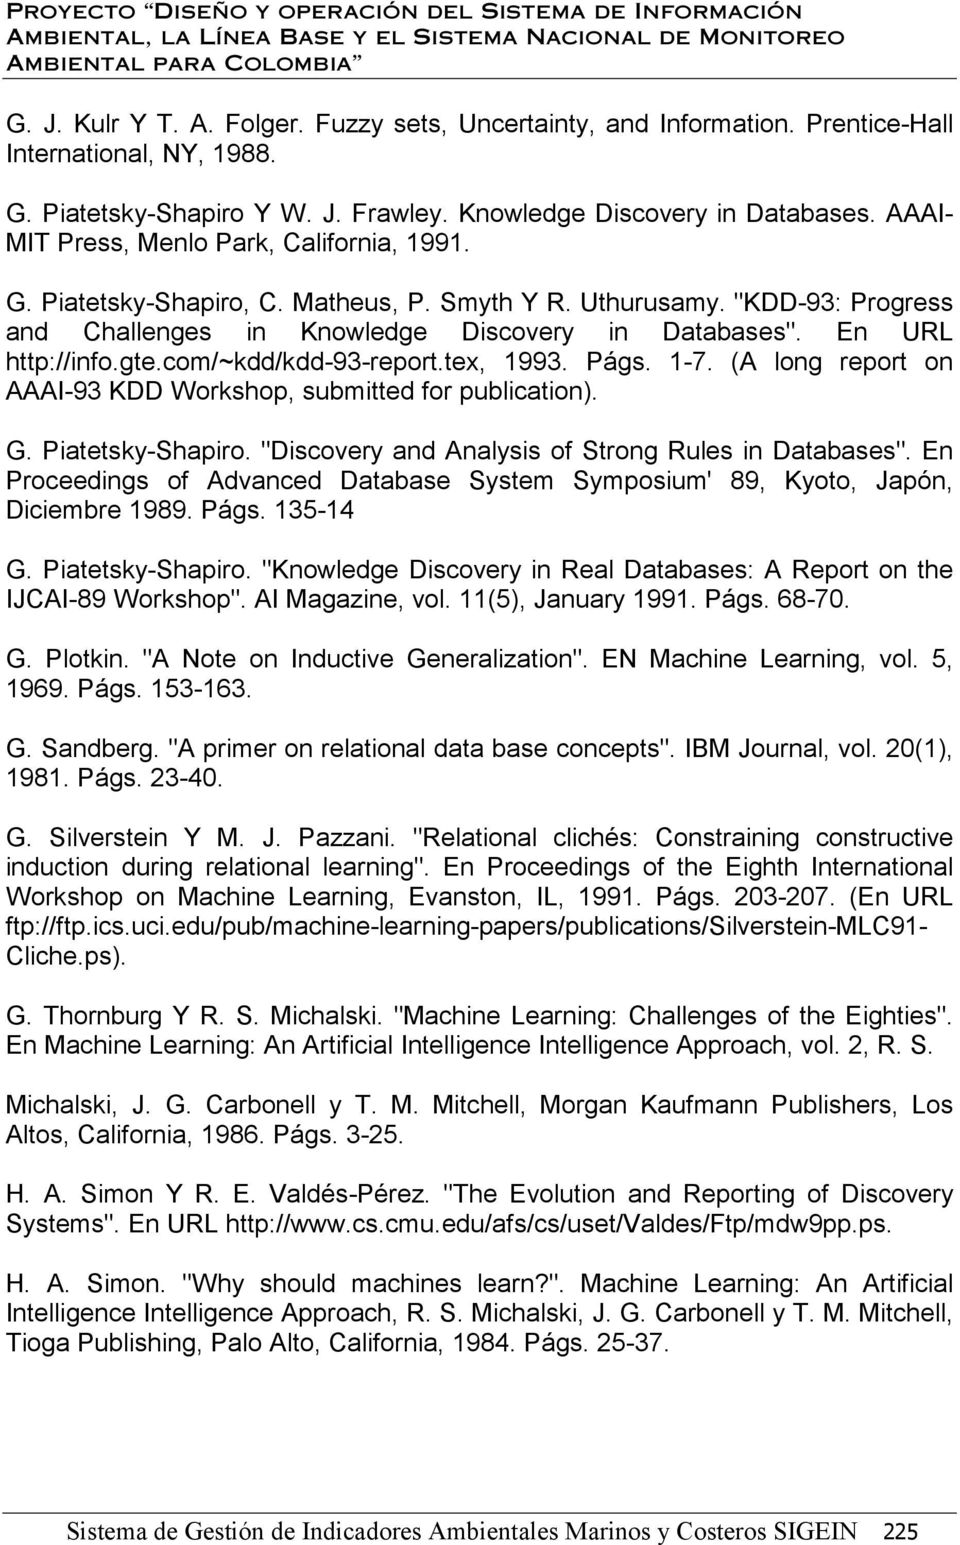 "gte.com/~kdd/kdd-93-report.tex, 1993. Págs. 1-7. (A long report on AAAI-93 KDD Workshop, submitted for publication). G. Piatetsky-Shapiro. ""Discovery and Analysis of Strong Rules in Databases""."